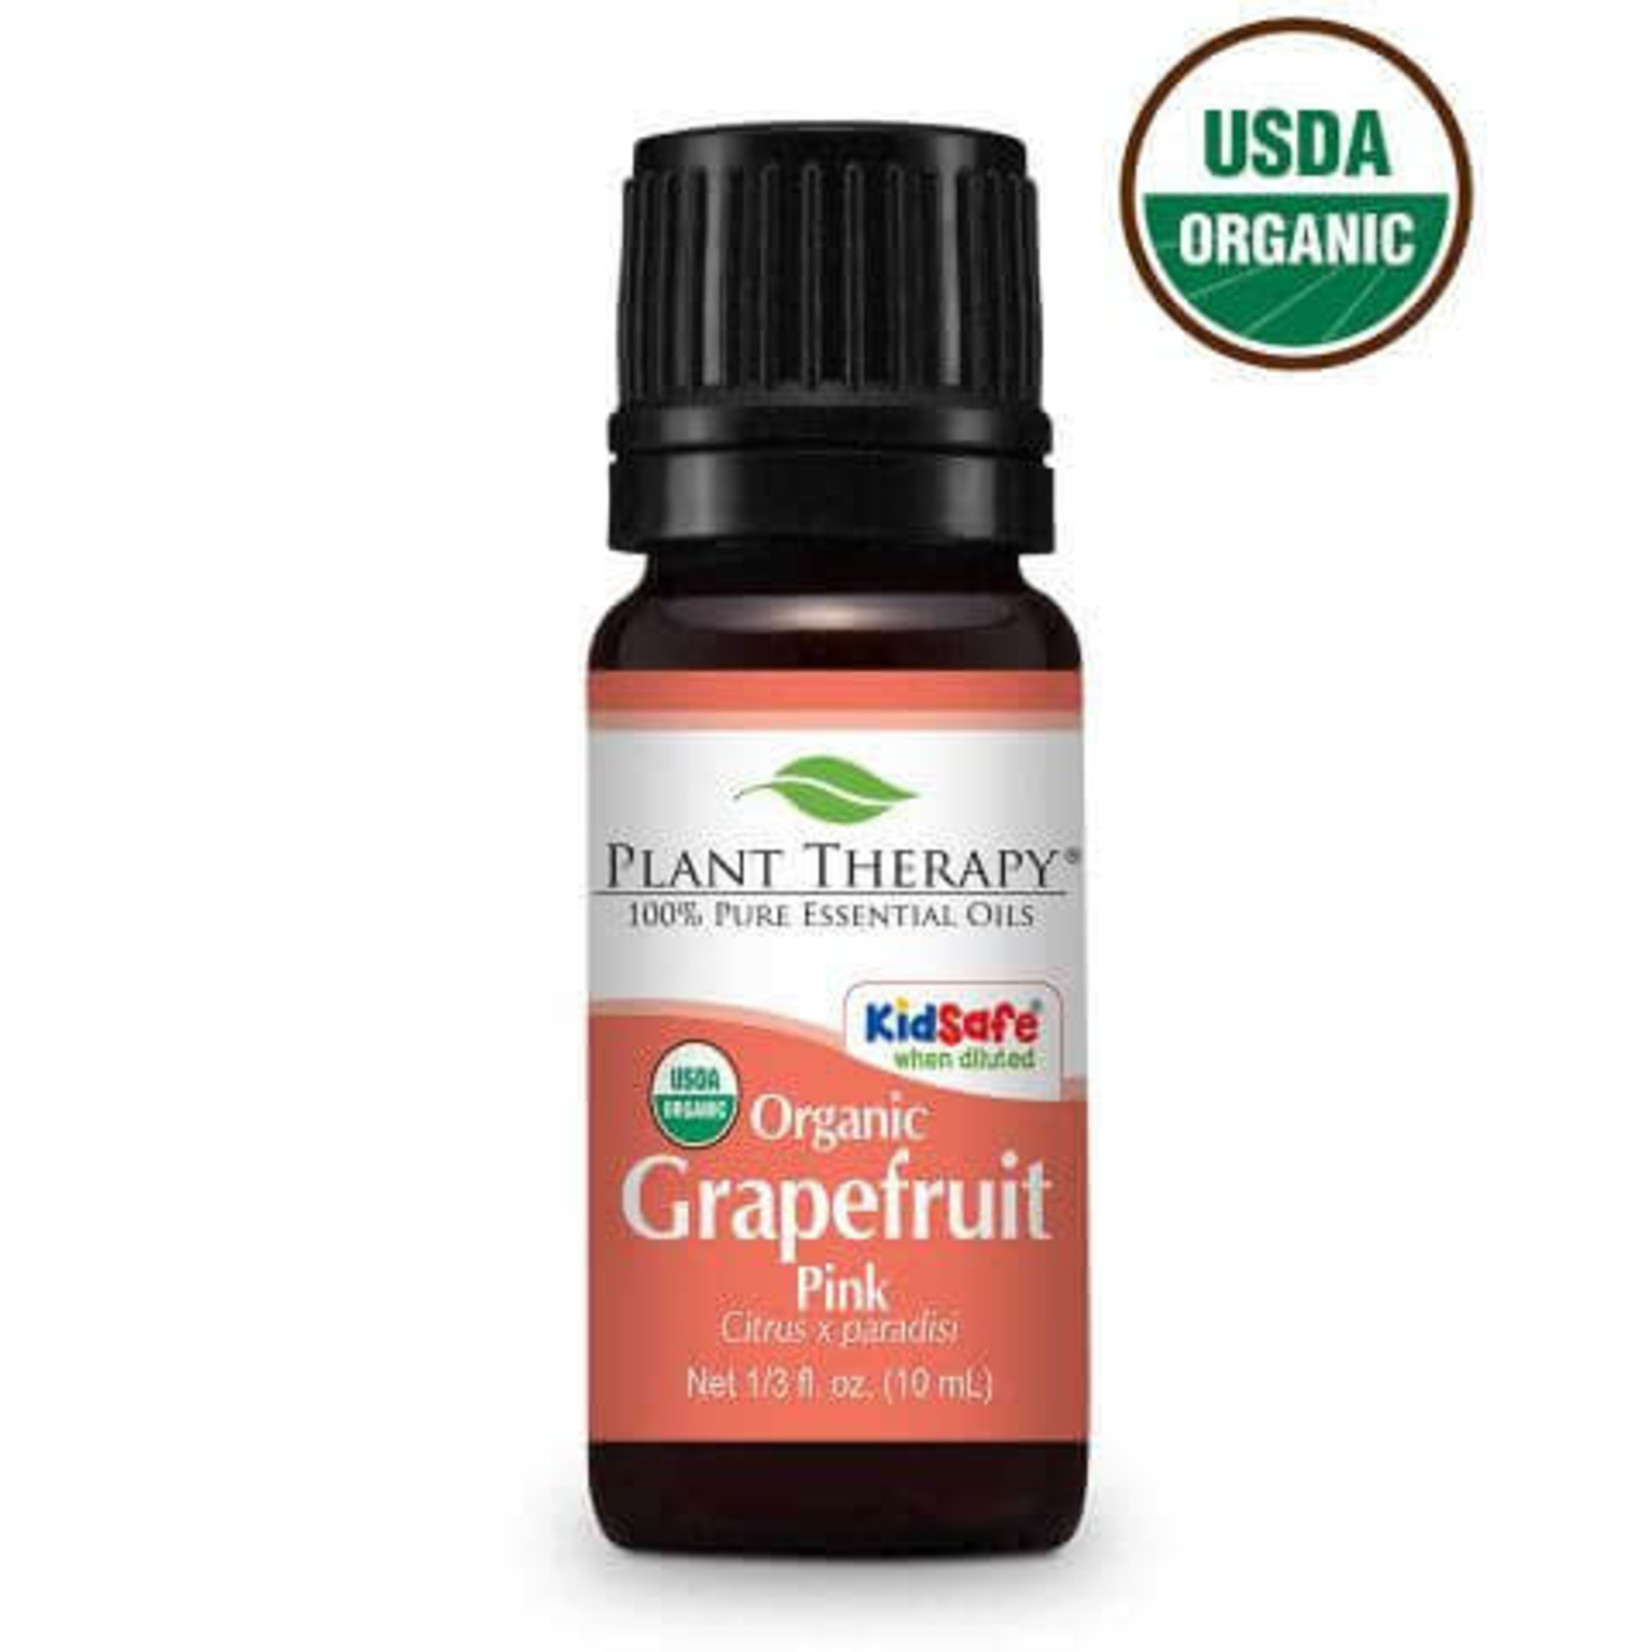 Plant Therapy PT Grapefruit Pink Organic Essential Oil 10ml